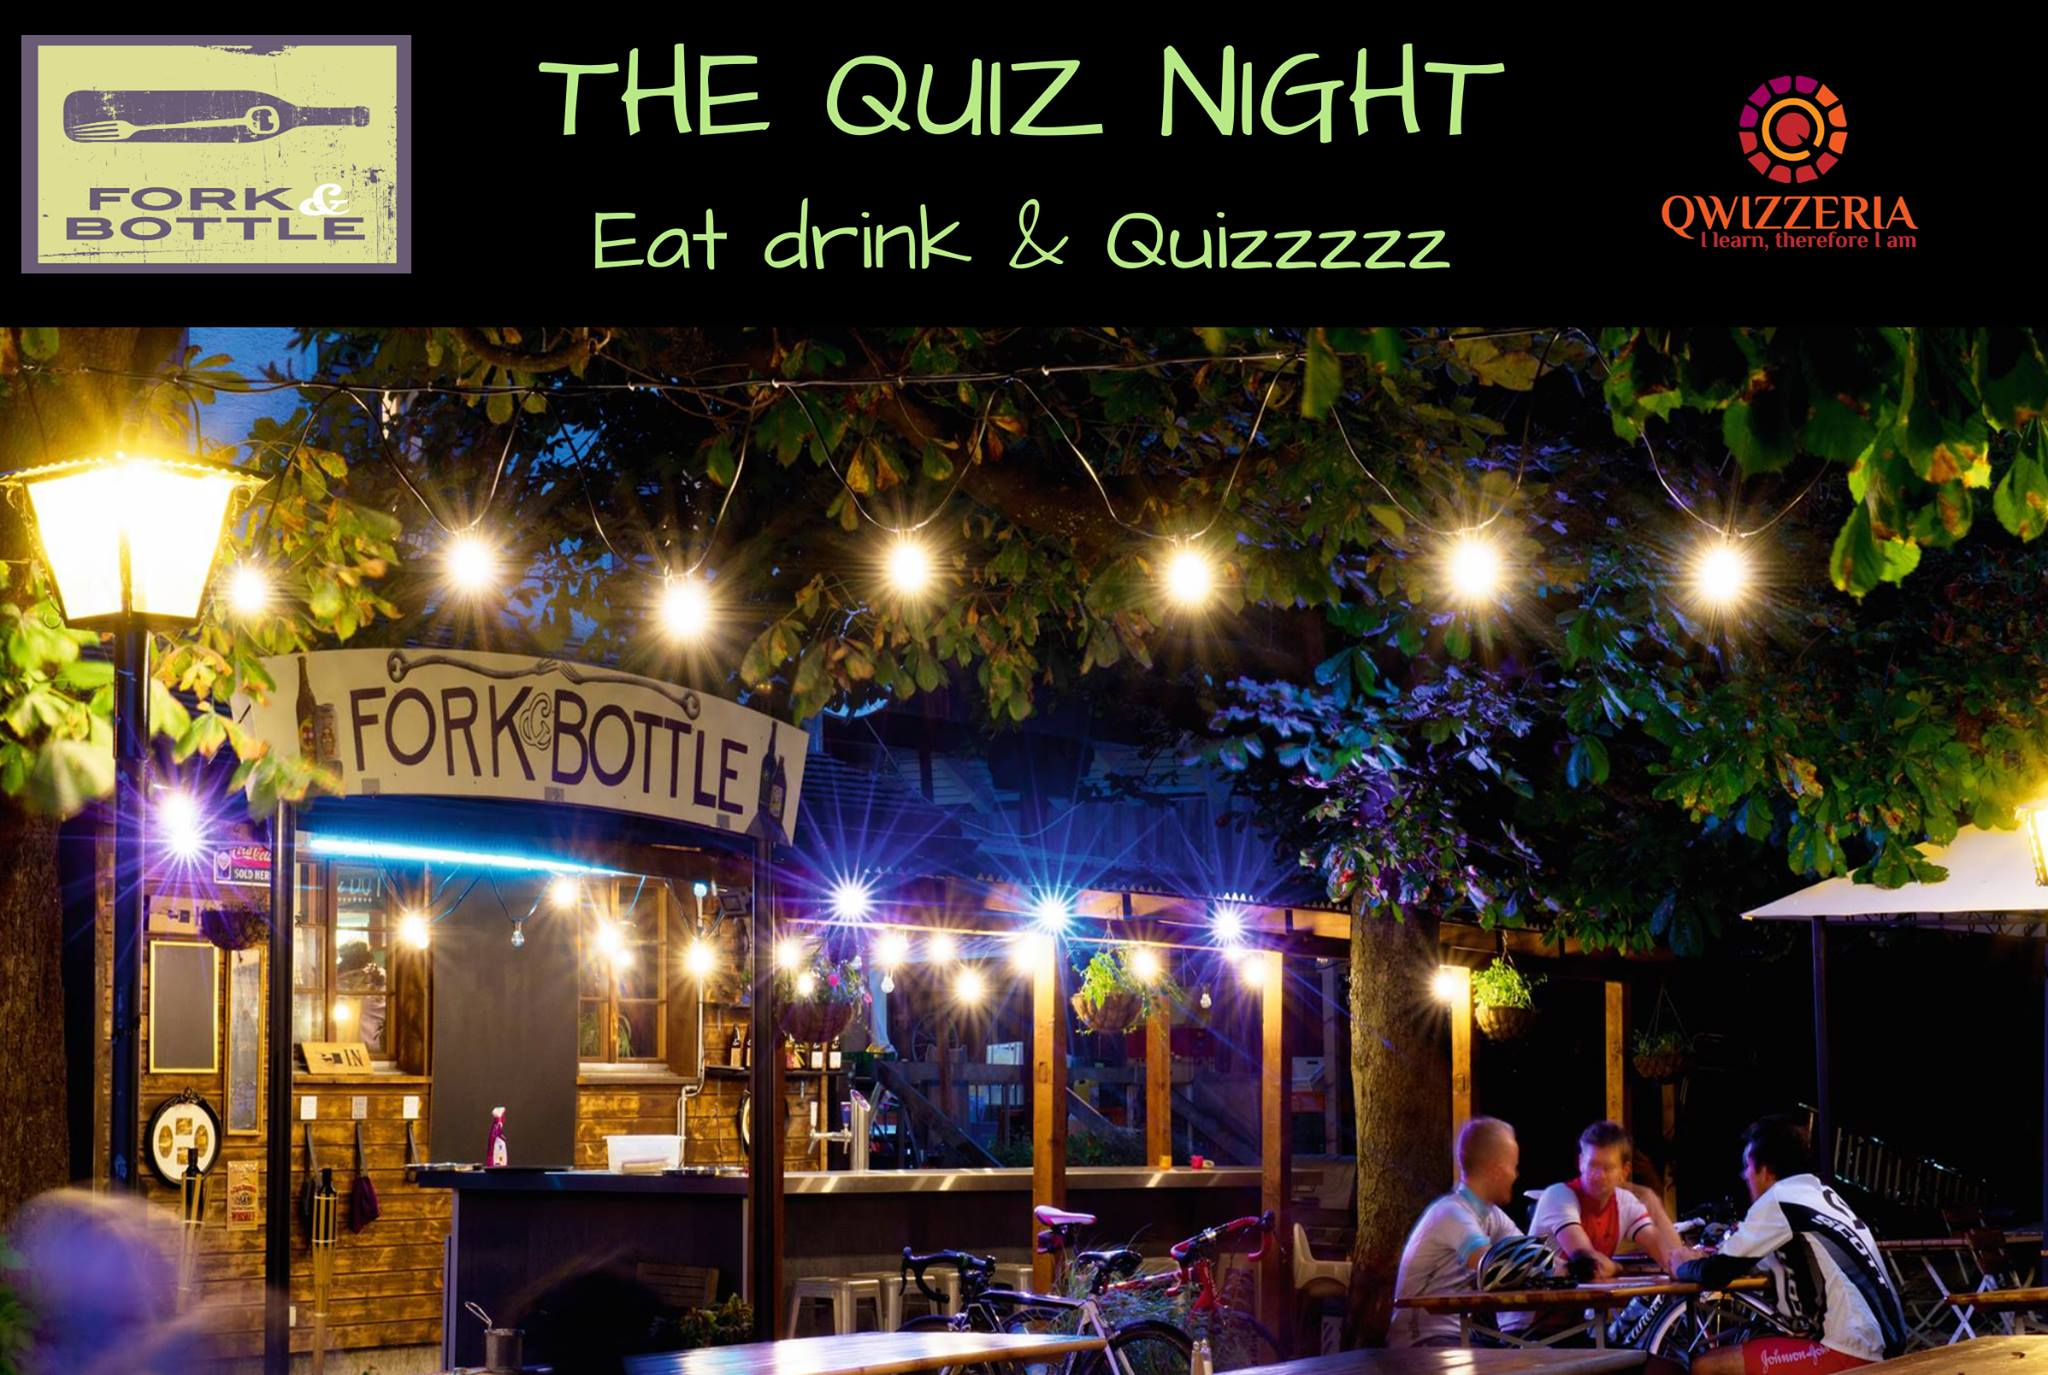 Join us at 7:30pm every other Tuesday after that) for an evening of Quizzing, burgers and beer! This quiz night is a team event (free entry) questions include pictures, general trivia from around the world and a thing or two about food and drinks. Great prizes to be won! (Please RSVP to reserve your table.) . .